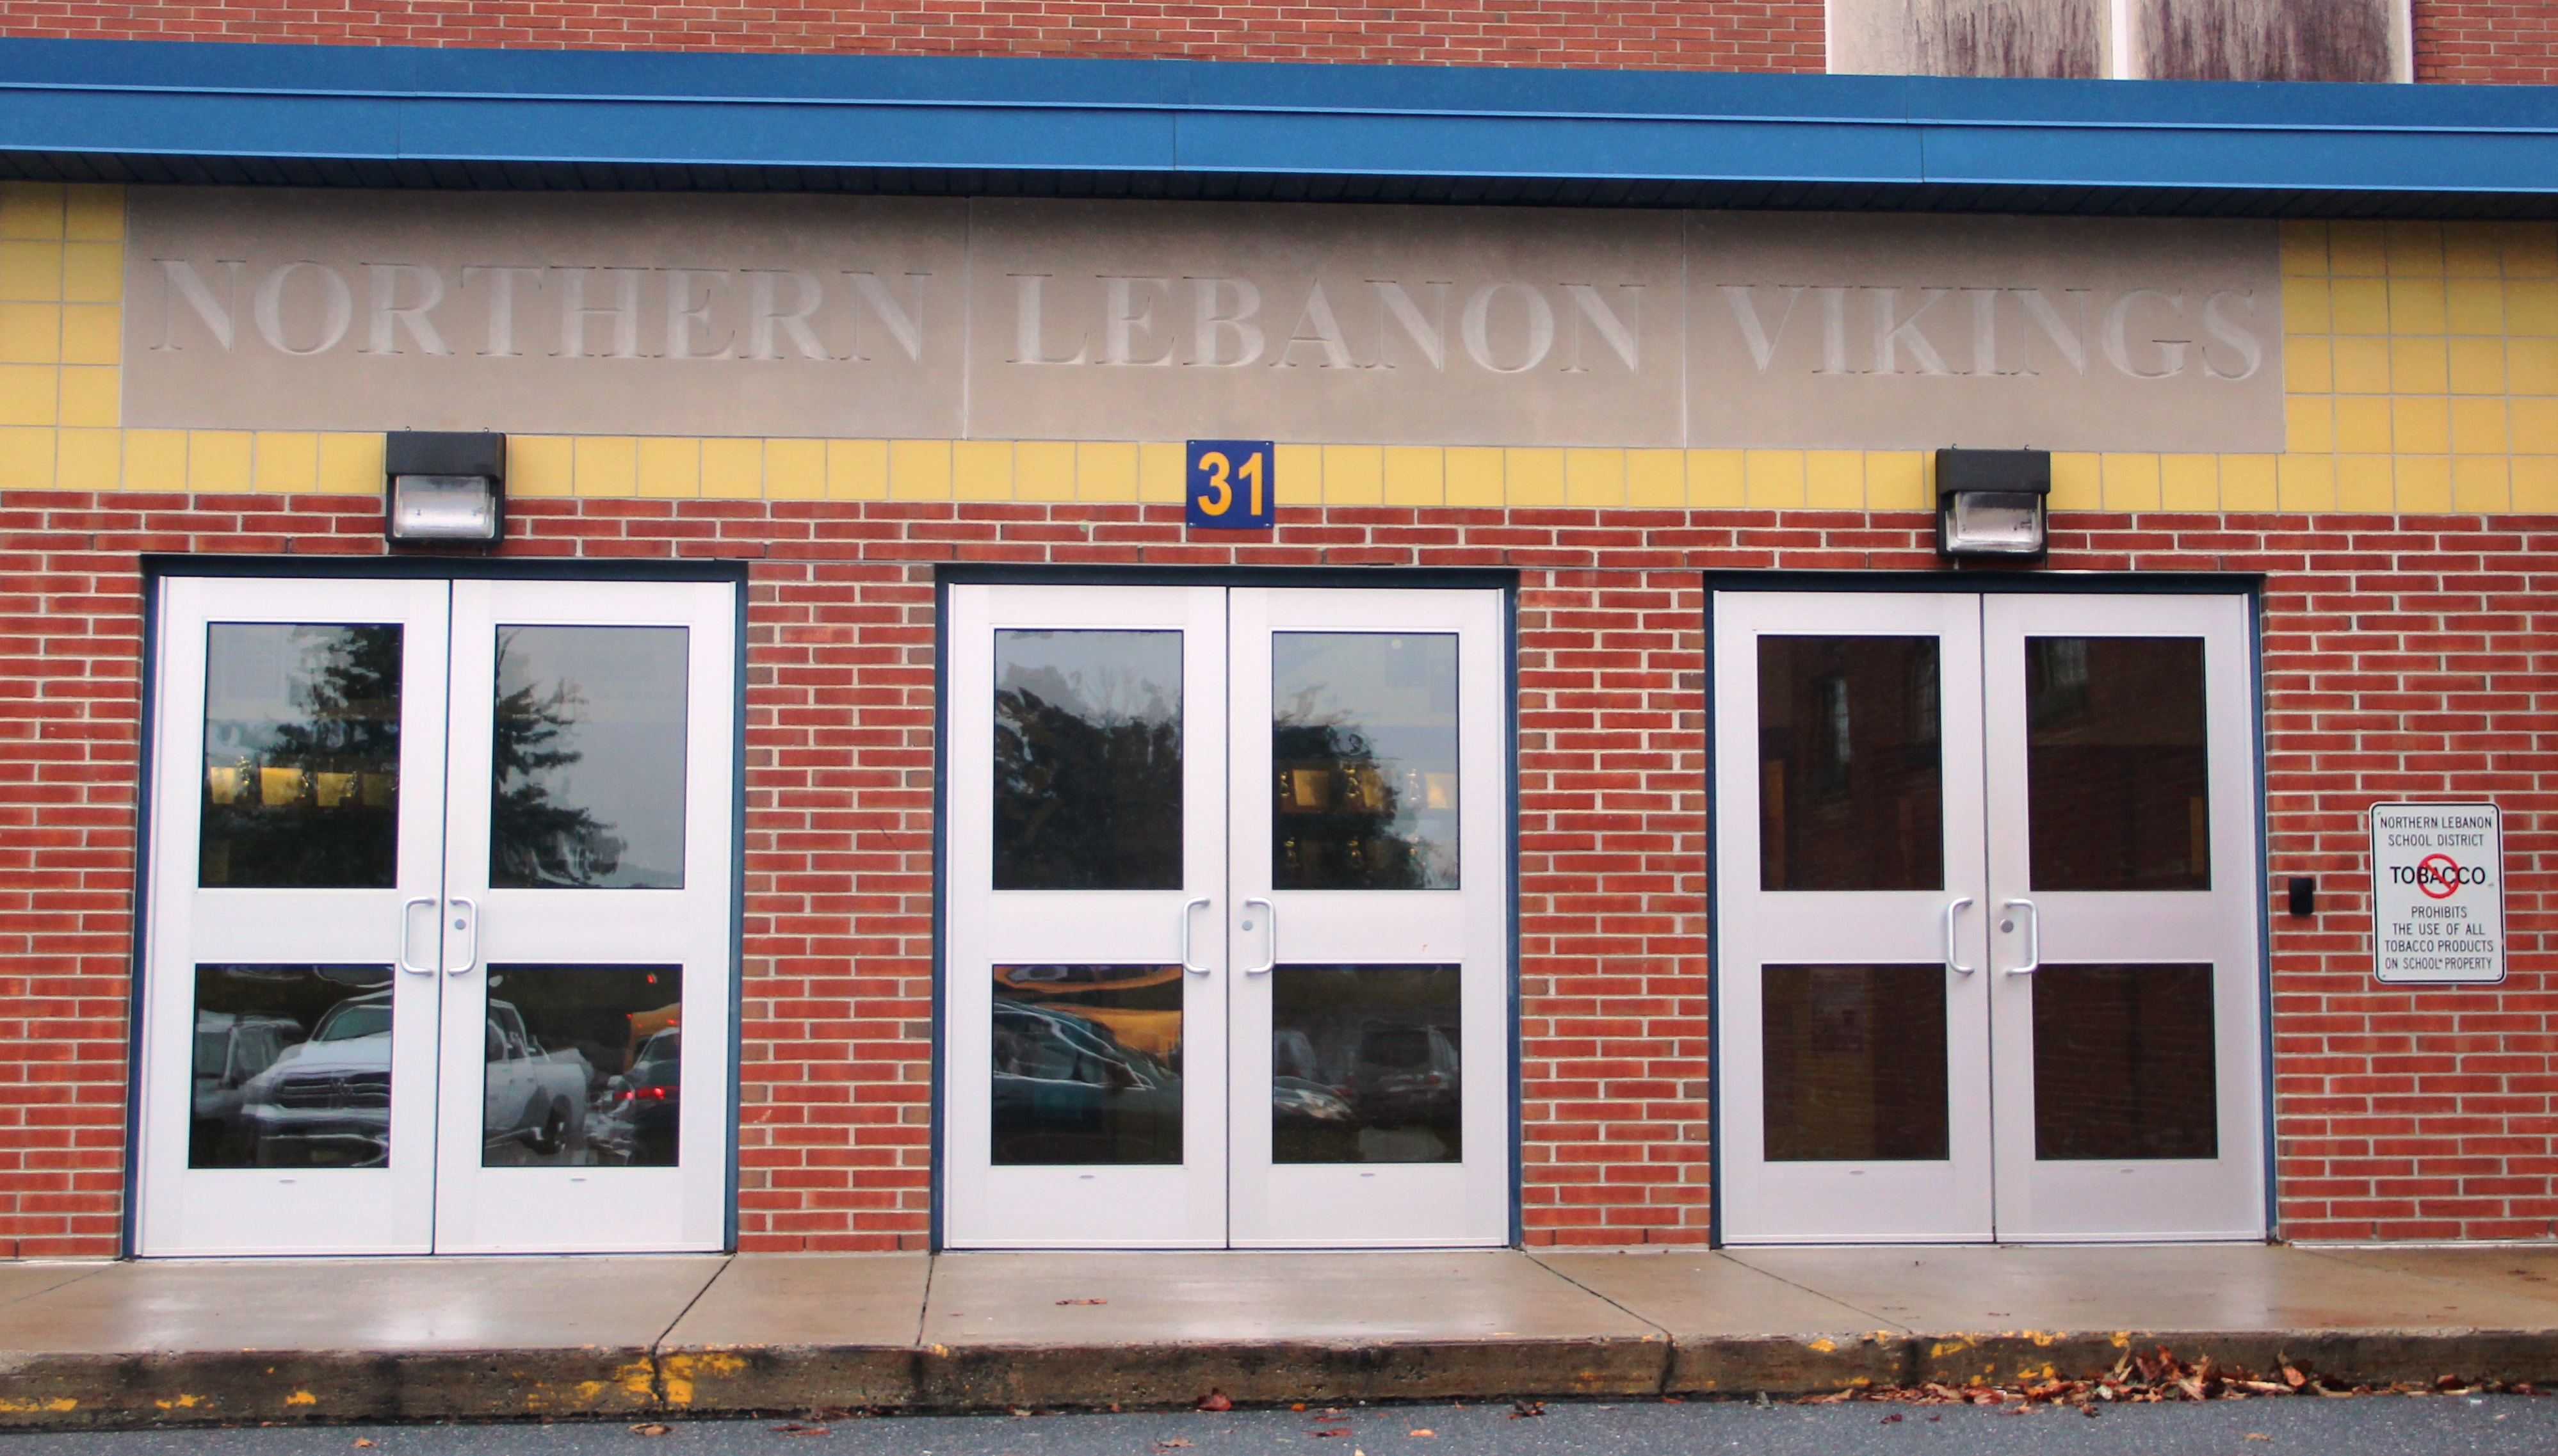 Northern Lebanon School District proceeding with designs of new elementary school, workshop planned